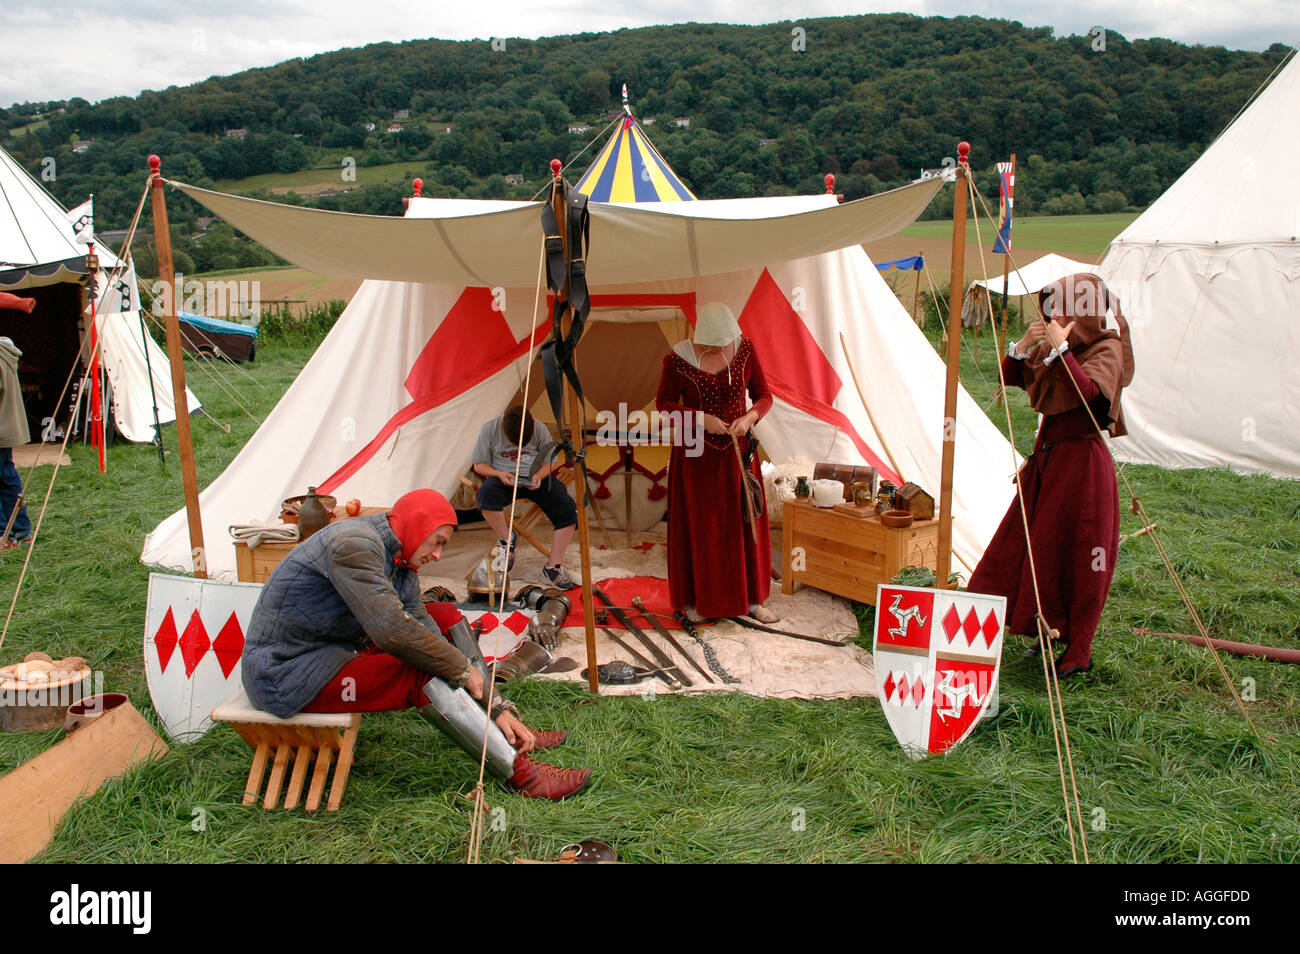 The Plantagenet Medieval Society Recreate Life In The 14th Century